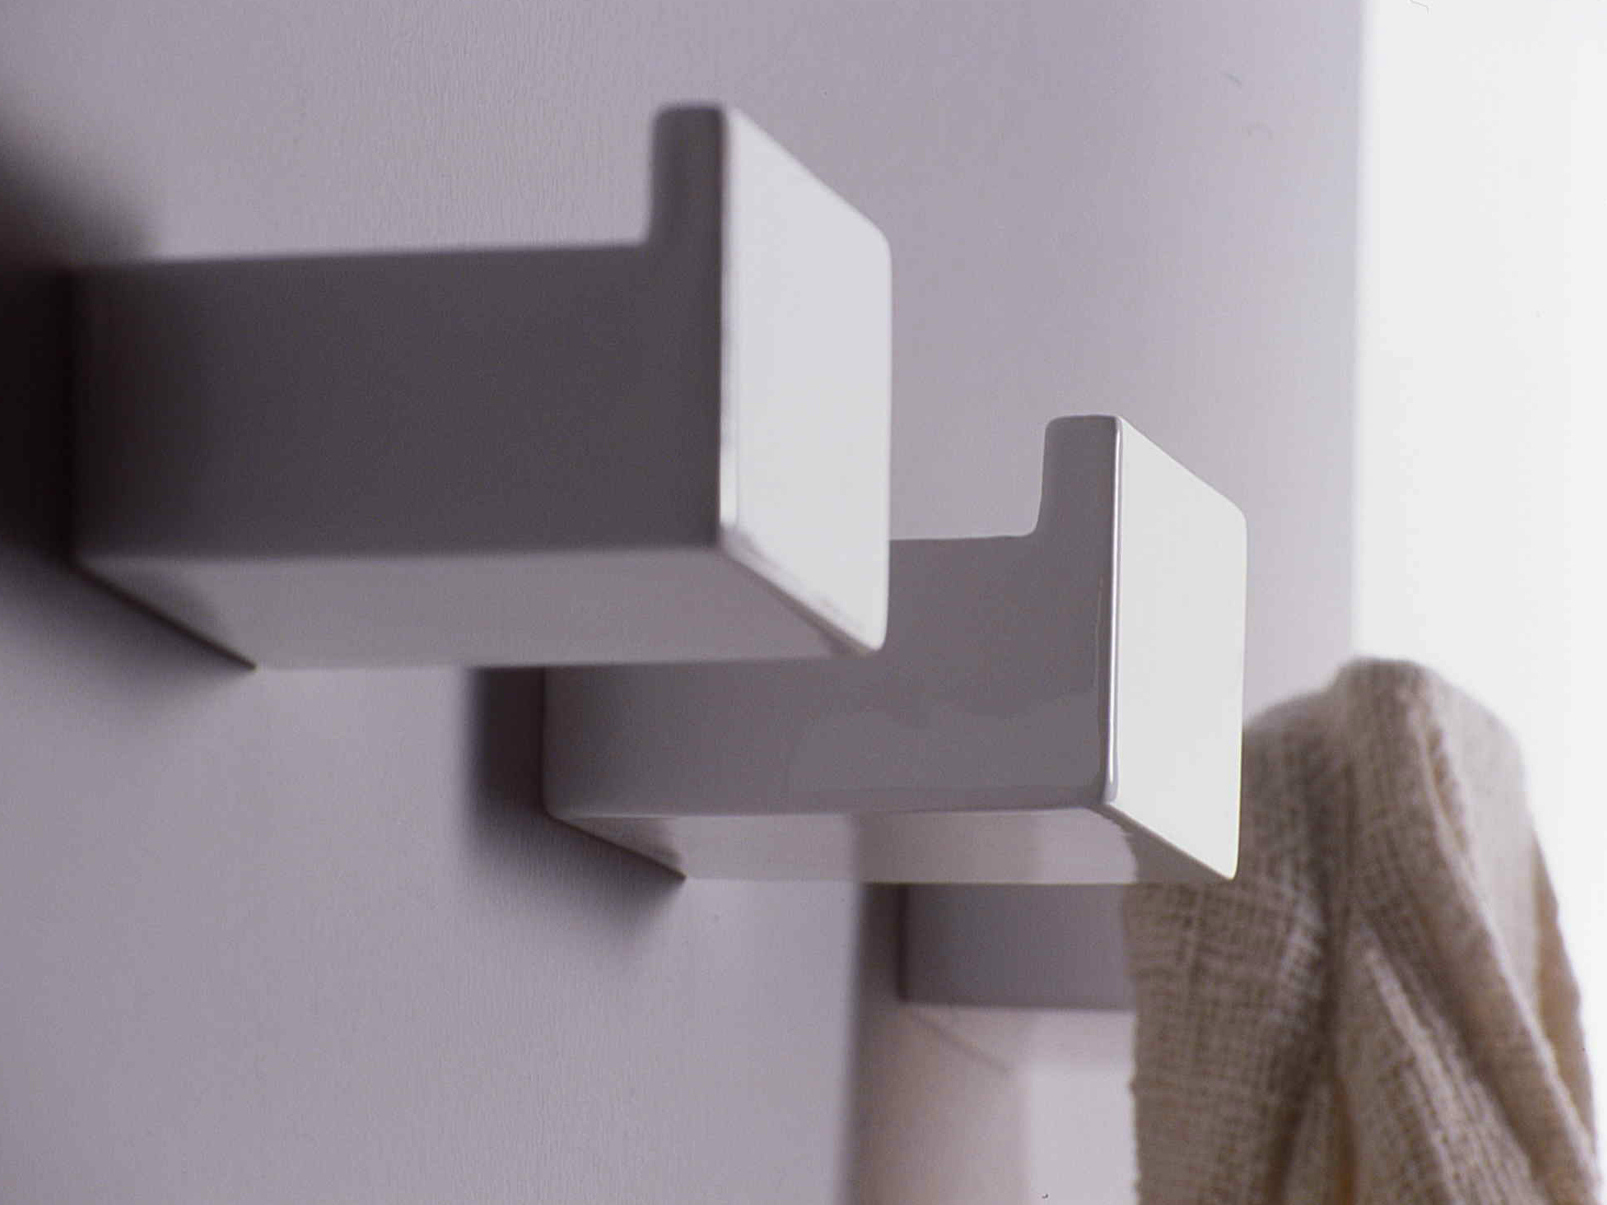 boffi robe hooks  archiproducts -